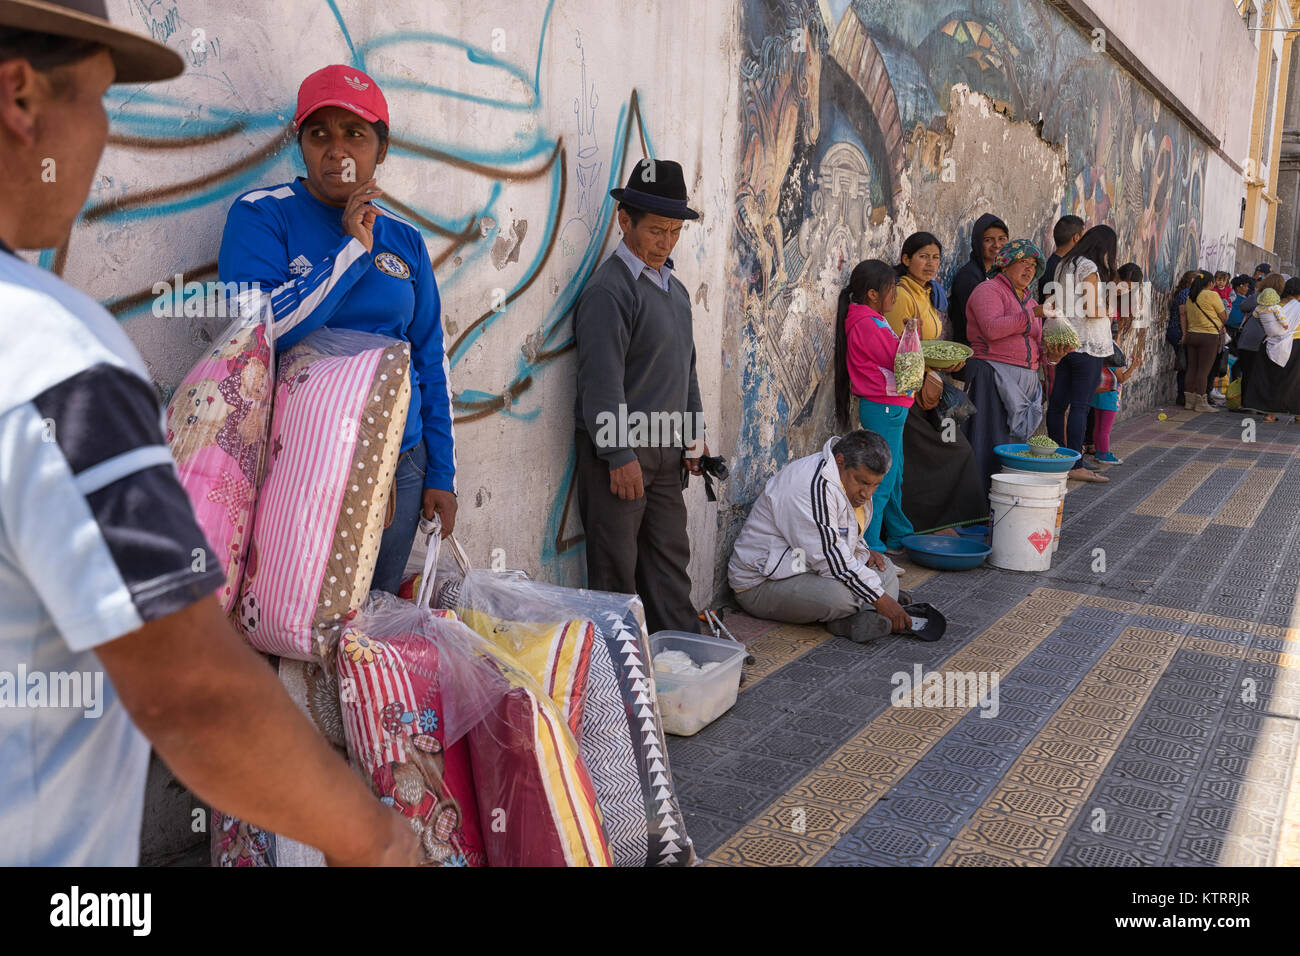 Otavalo, Ecuador-December 23, 2017:people cooling down in the shade on a hot day - Stock Image